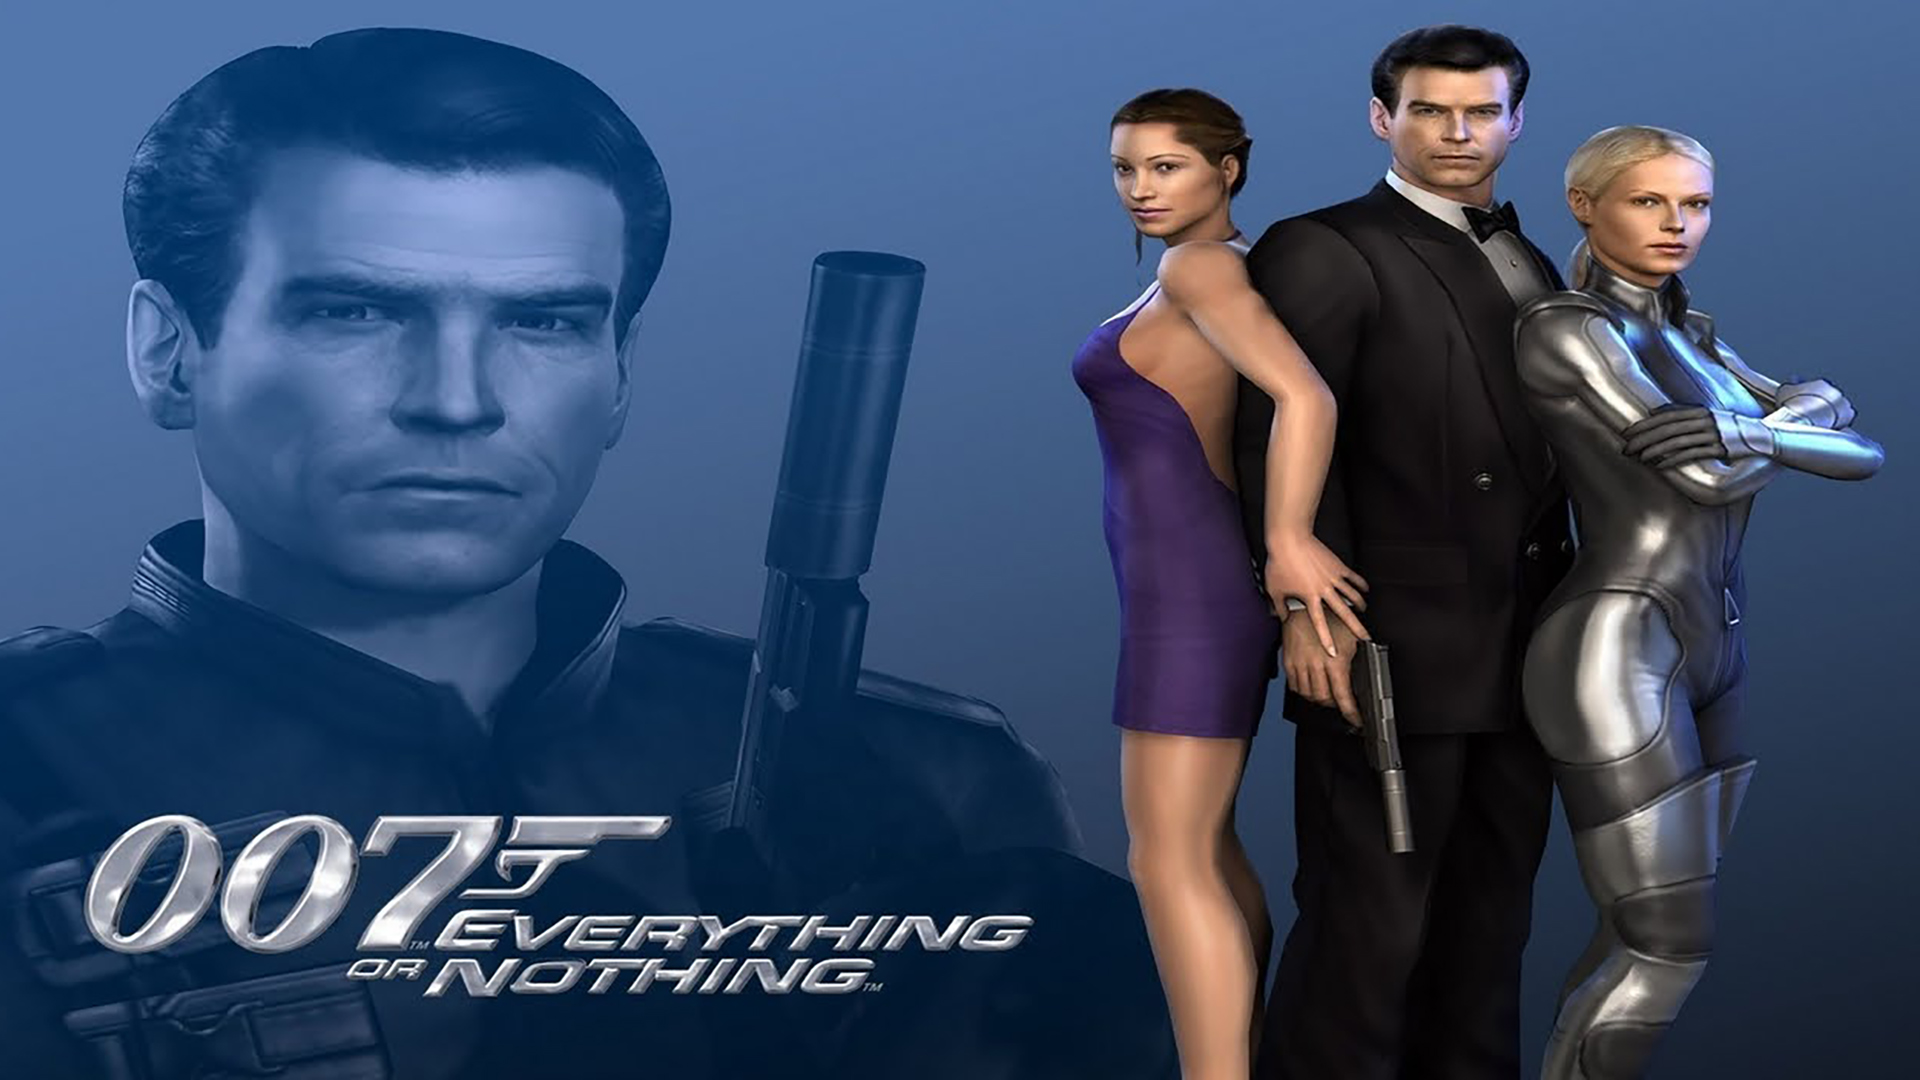 james_bond_007_everything_or_nothing_big.jpg